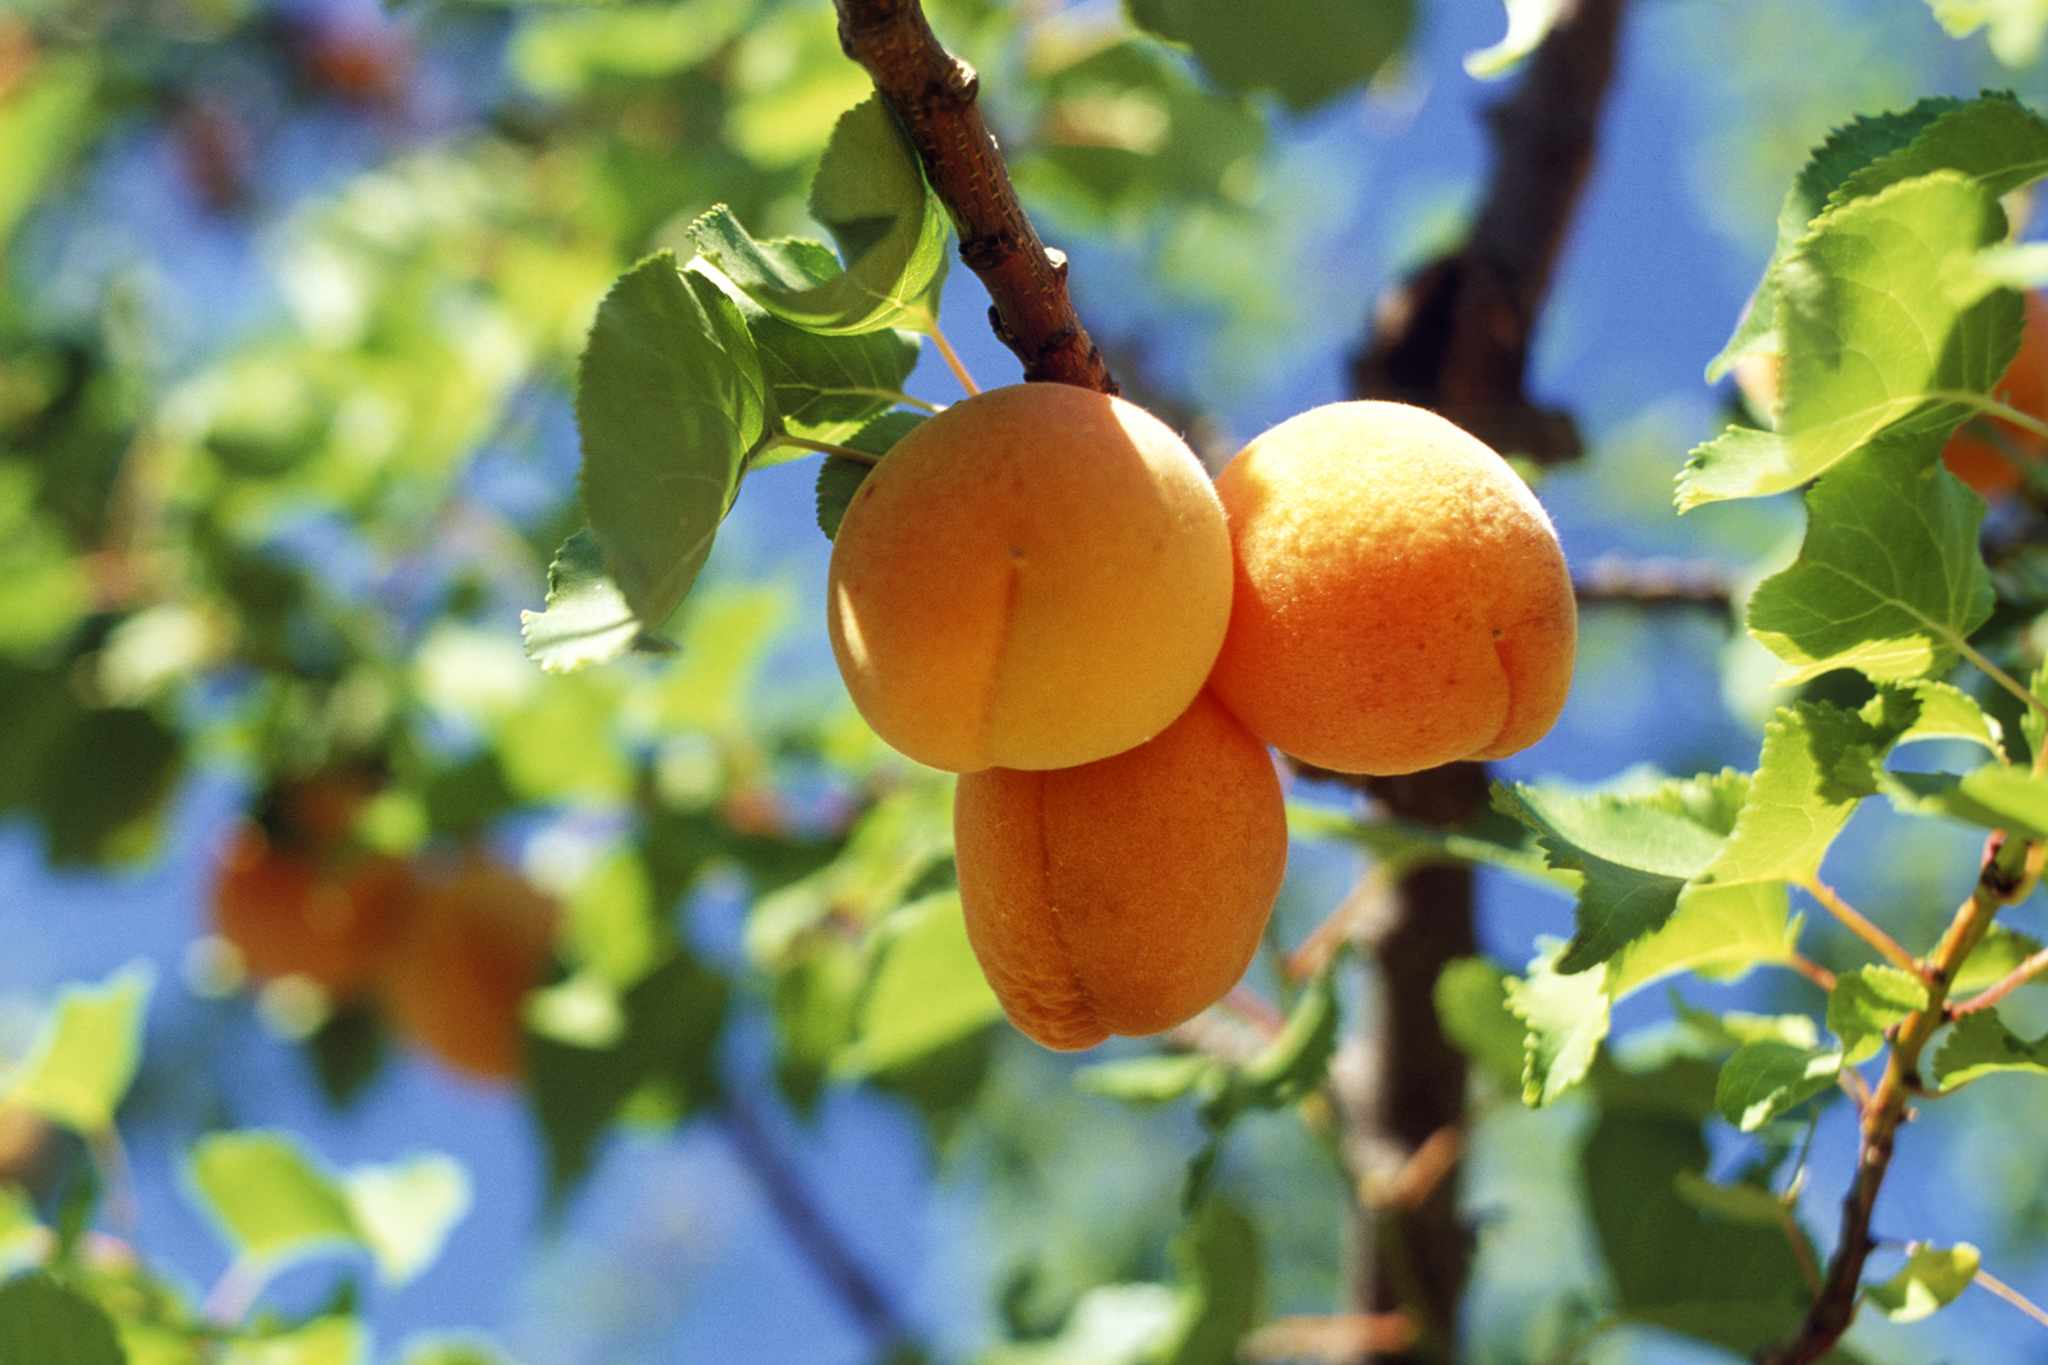 Apricot 'Blenheim'. Photo: Getty Images.